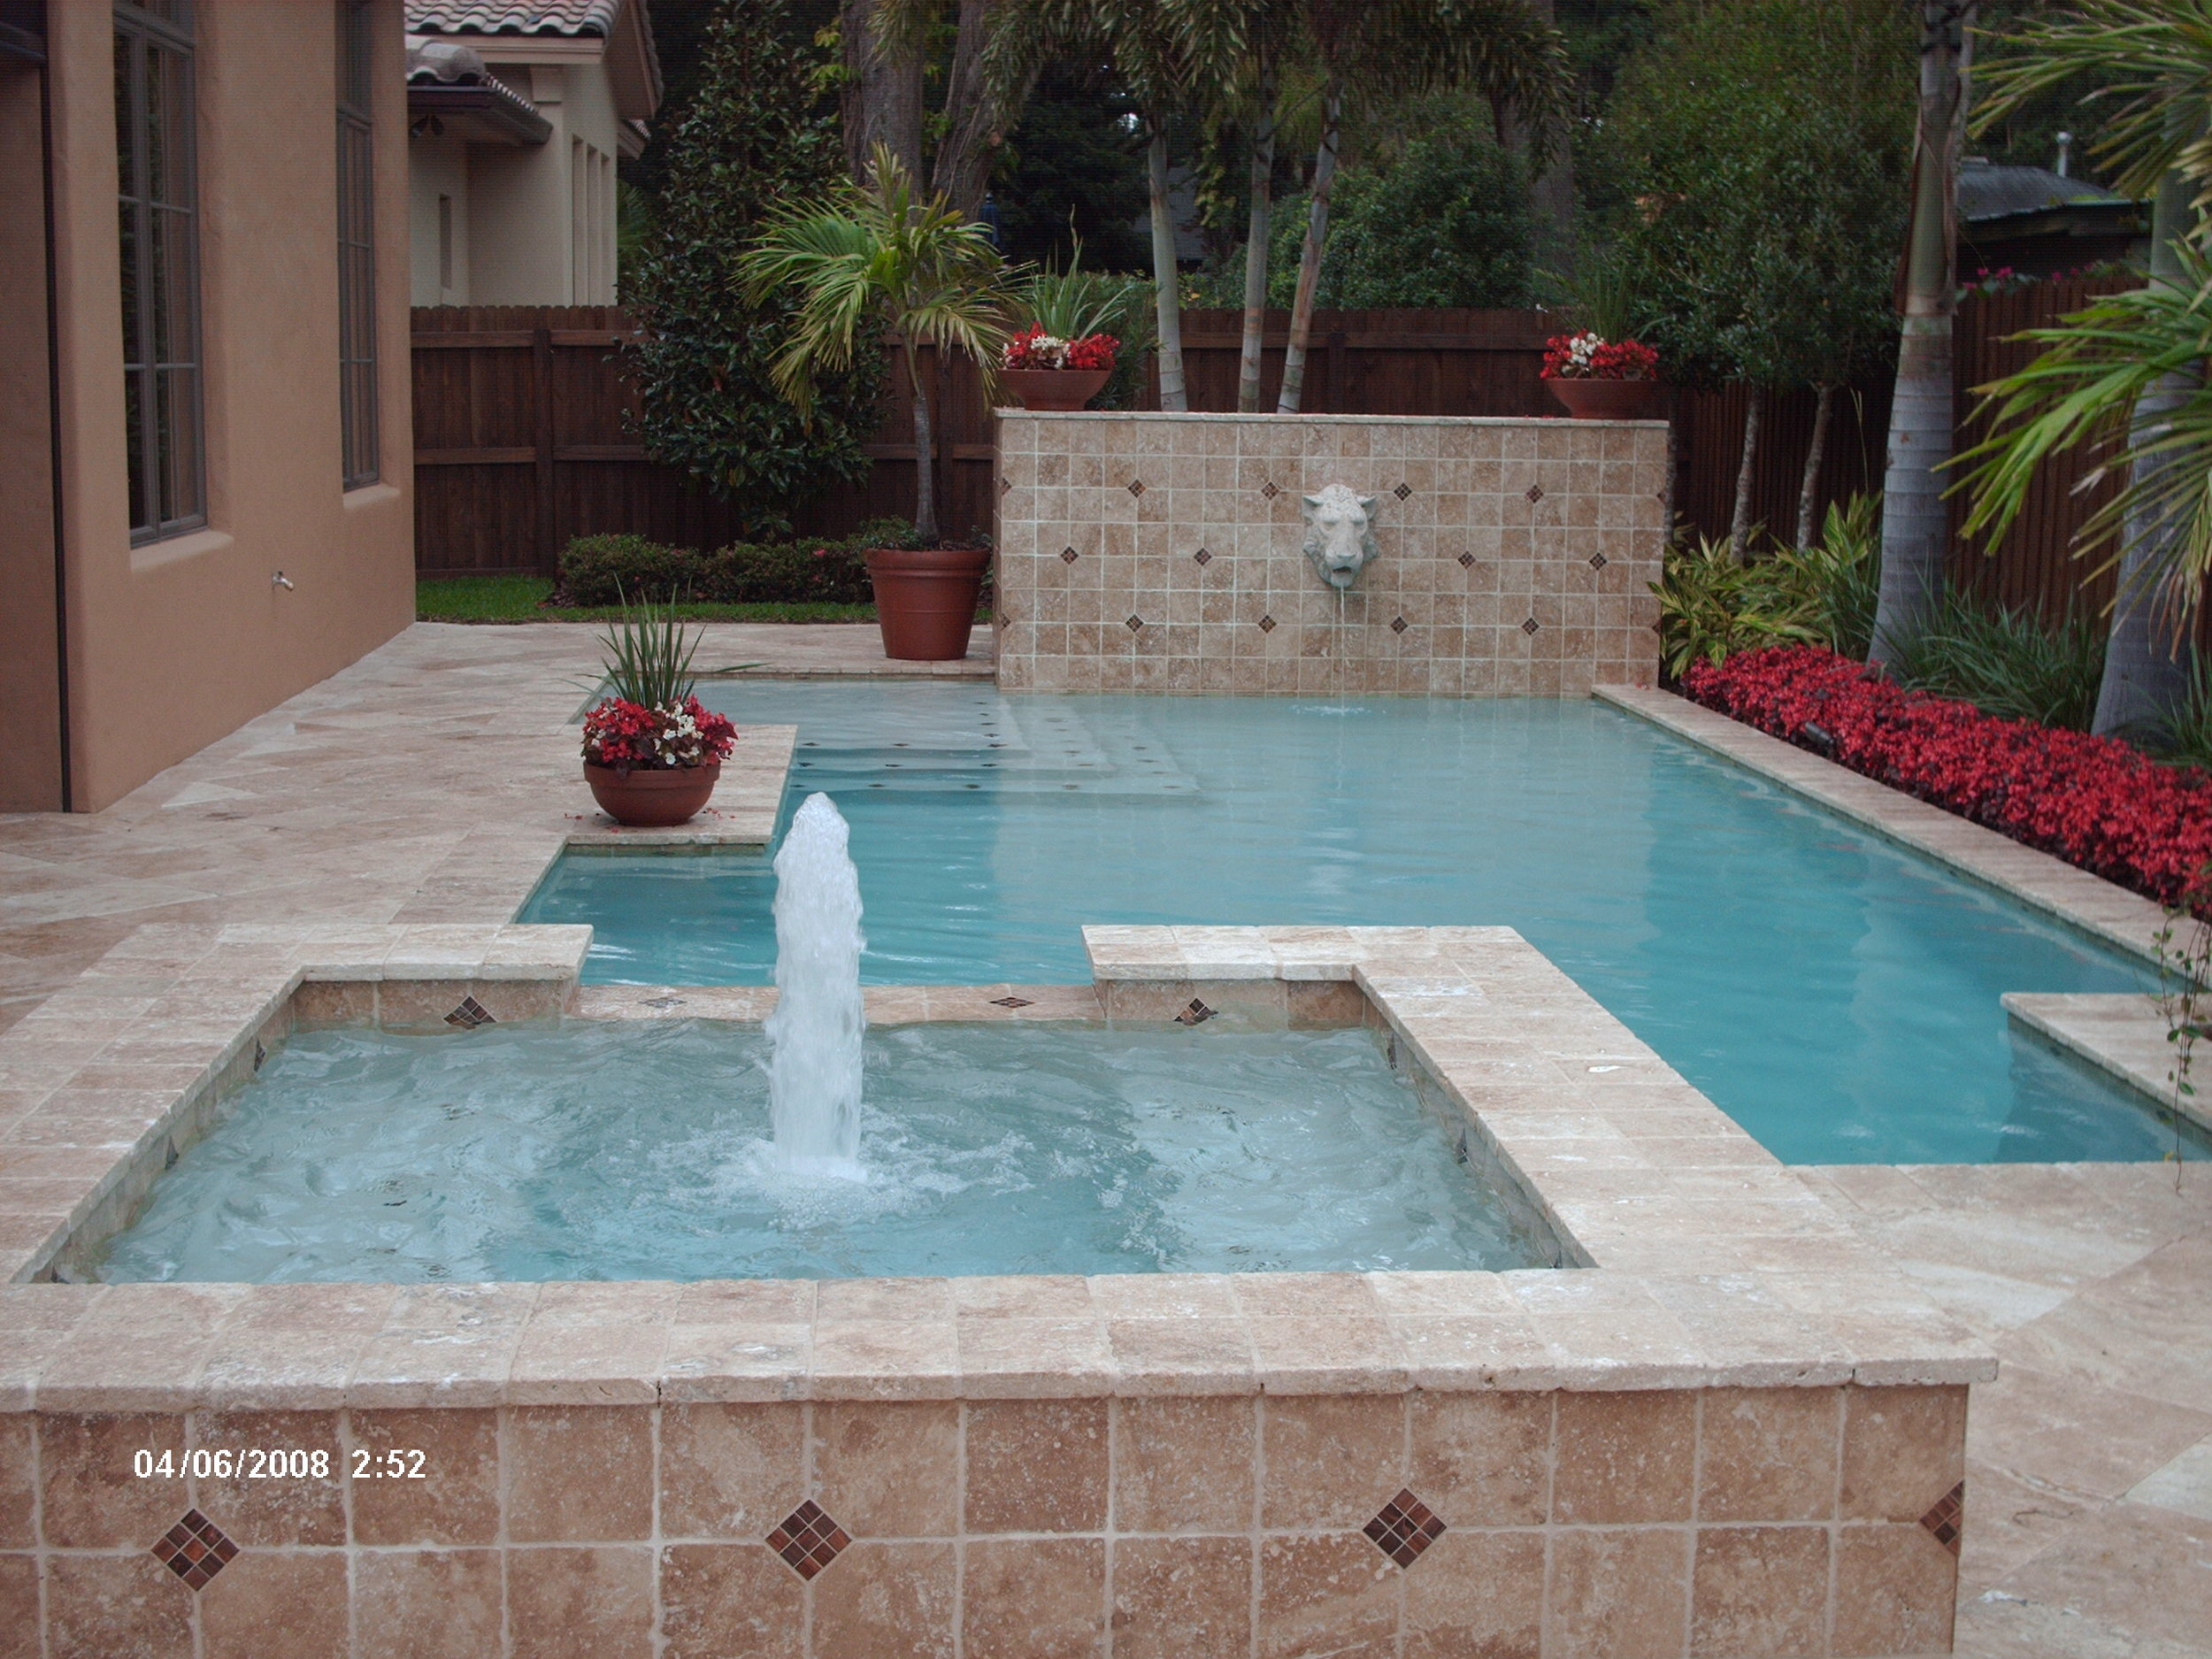 Classic Spa with Bubbler and Fountain